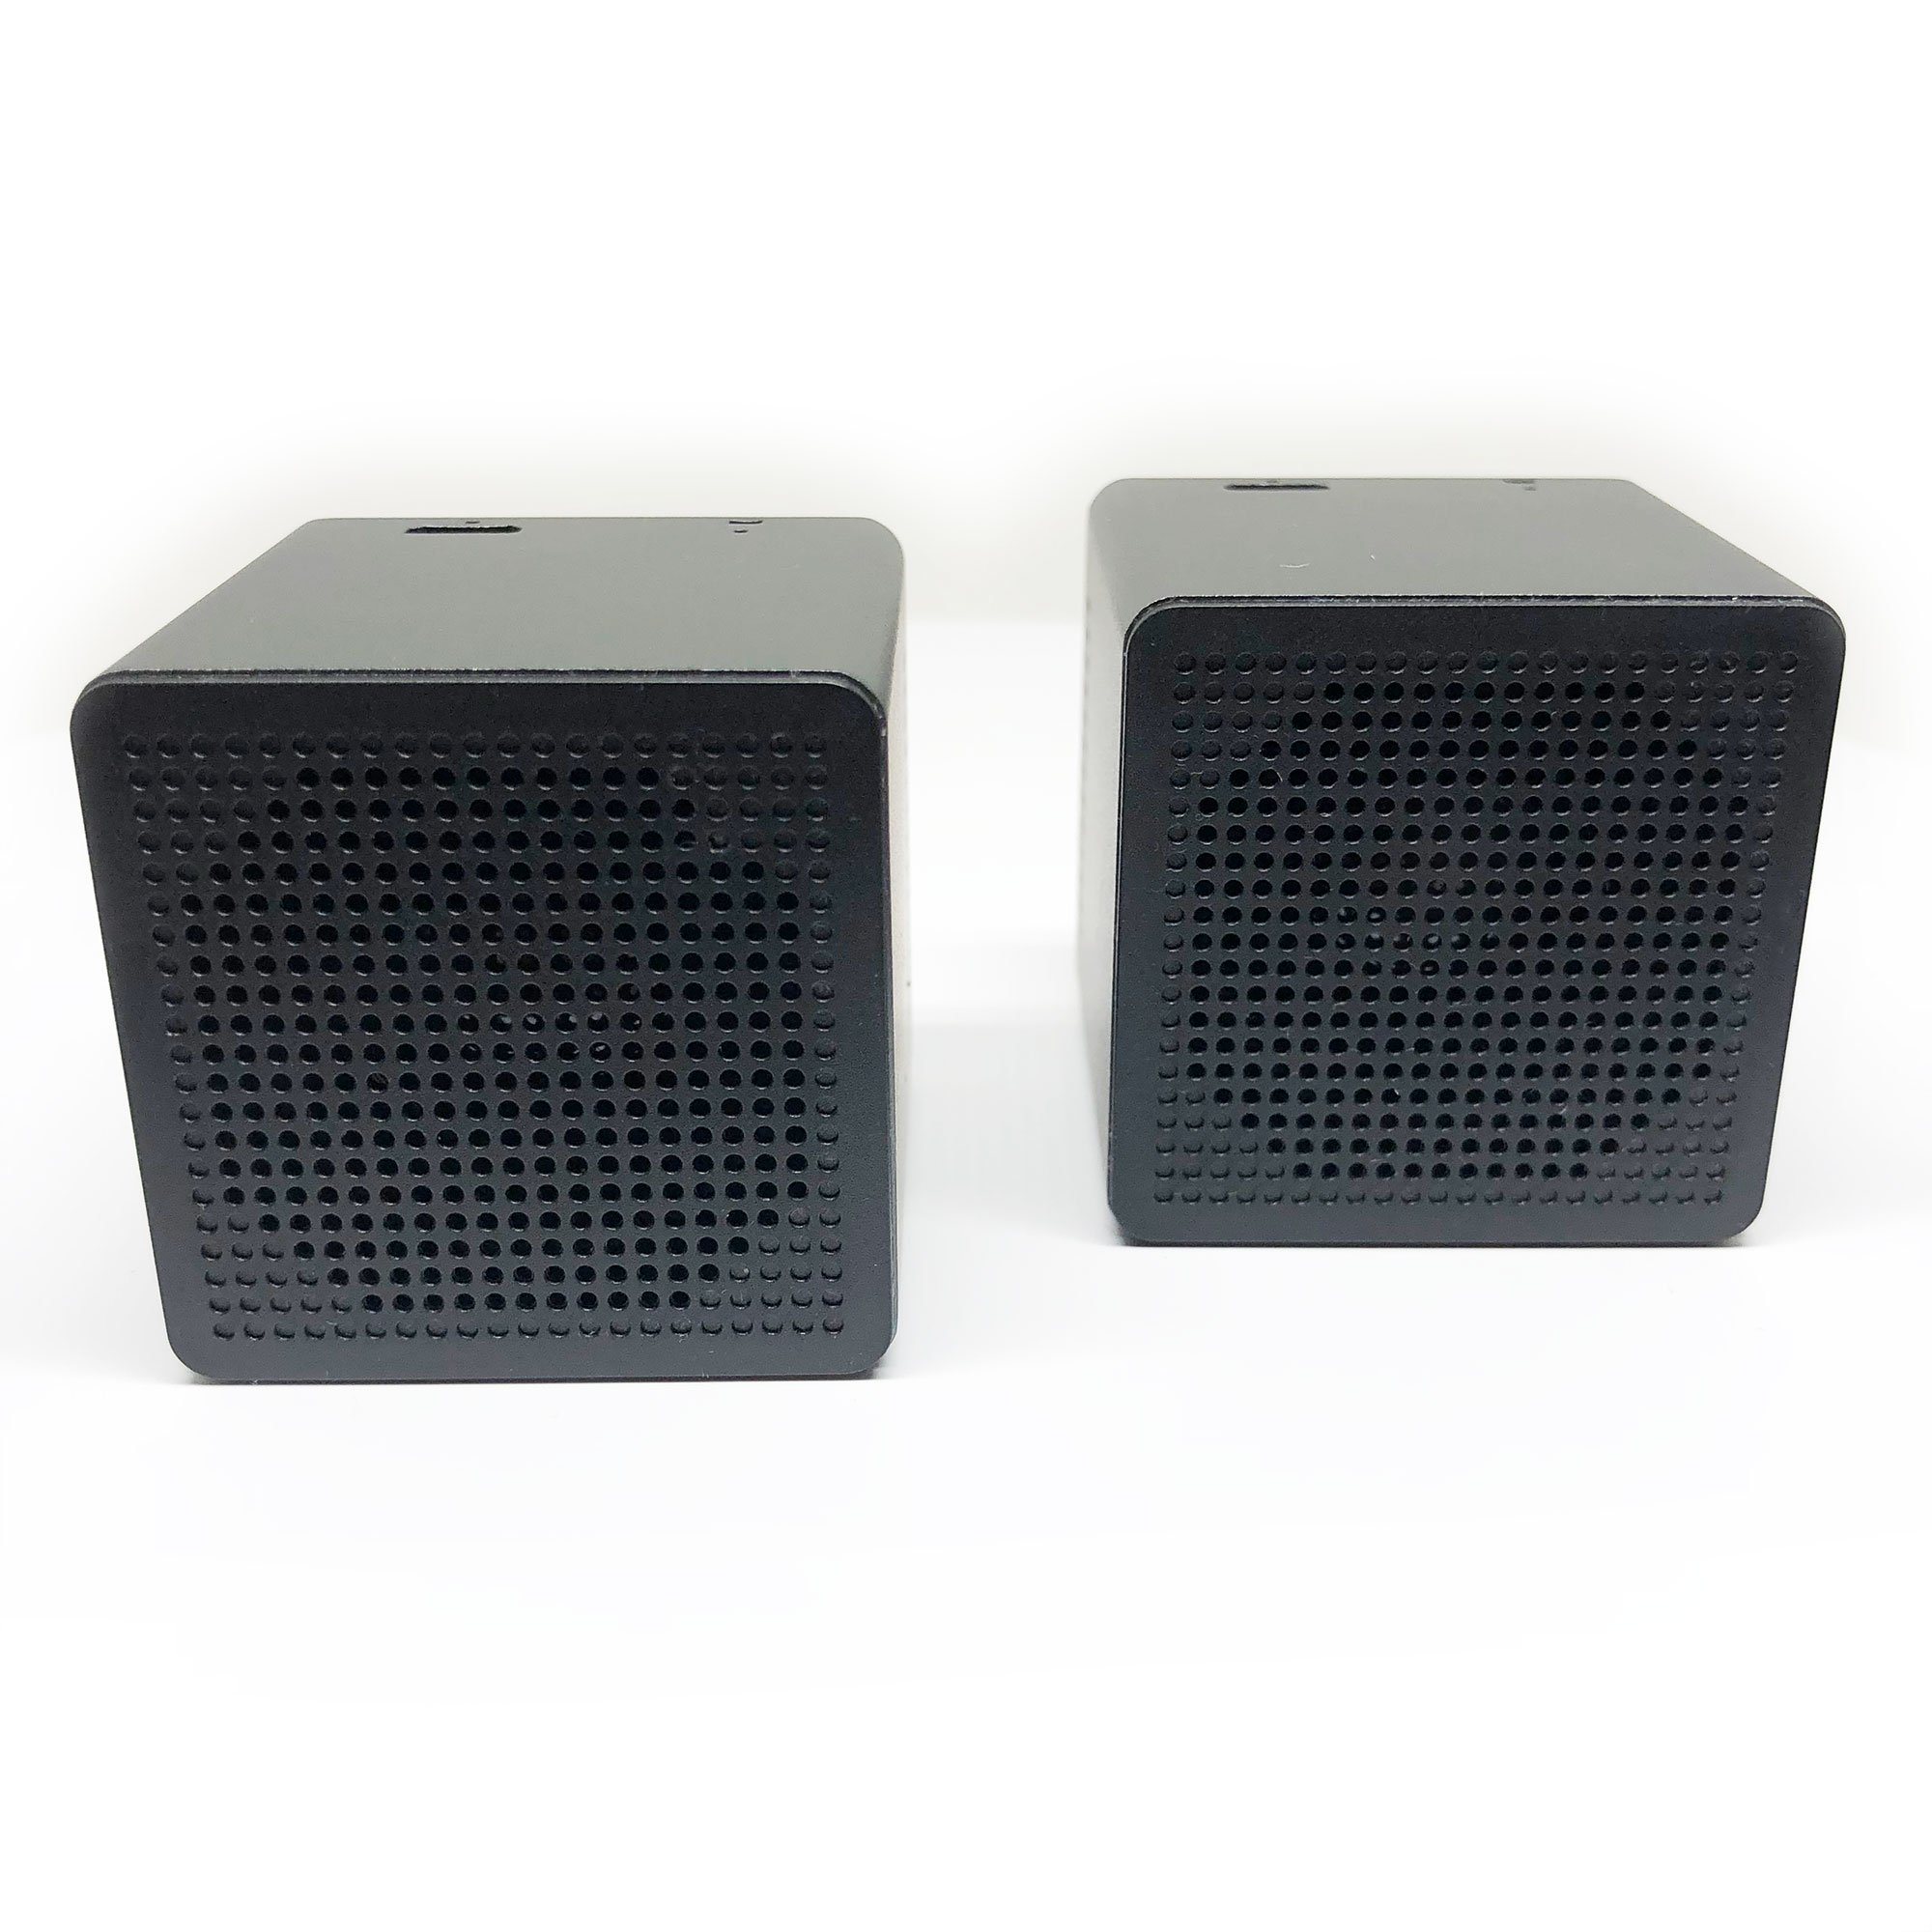 Wireless Bluetooth Speakers: True Twin Portable TWS Mini Stereo Mic Dual Big Super Bass Microphone Outdoor Pair for iPhone Google Android Samsung Galaxy Nexus Laptops MAC PC Tablets Smartphones Echo